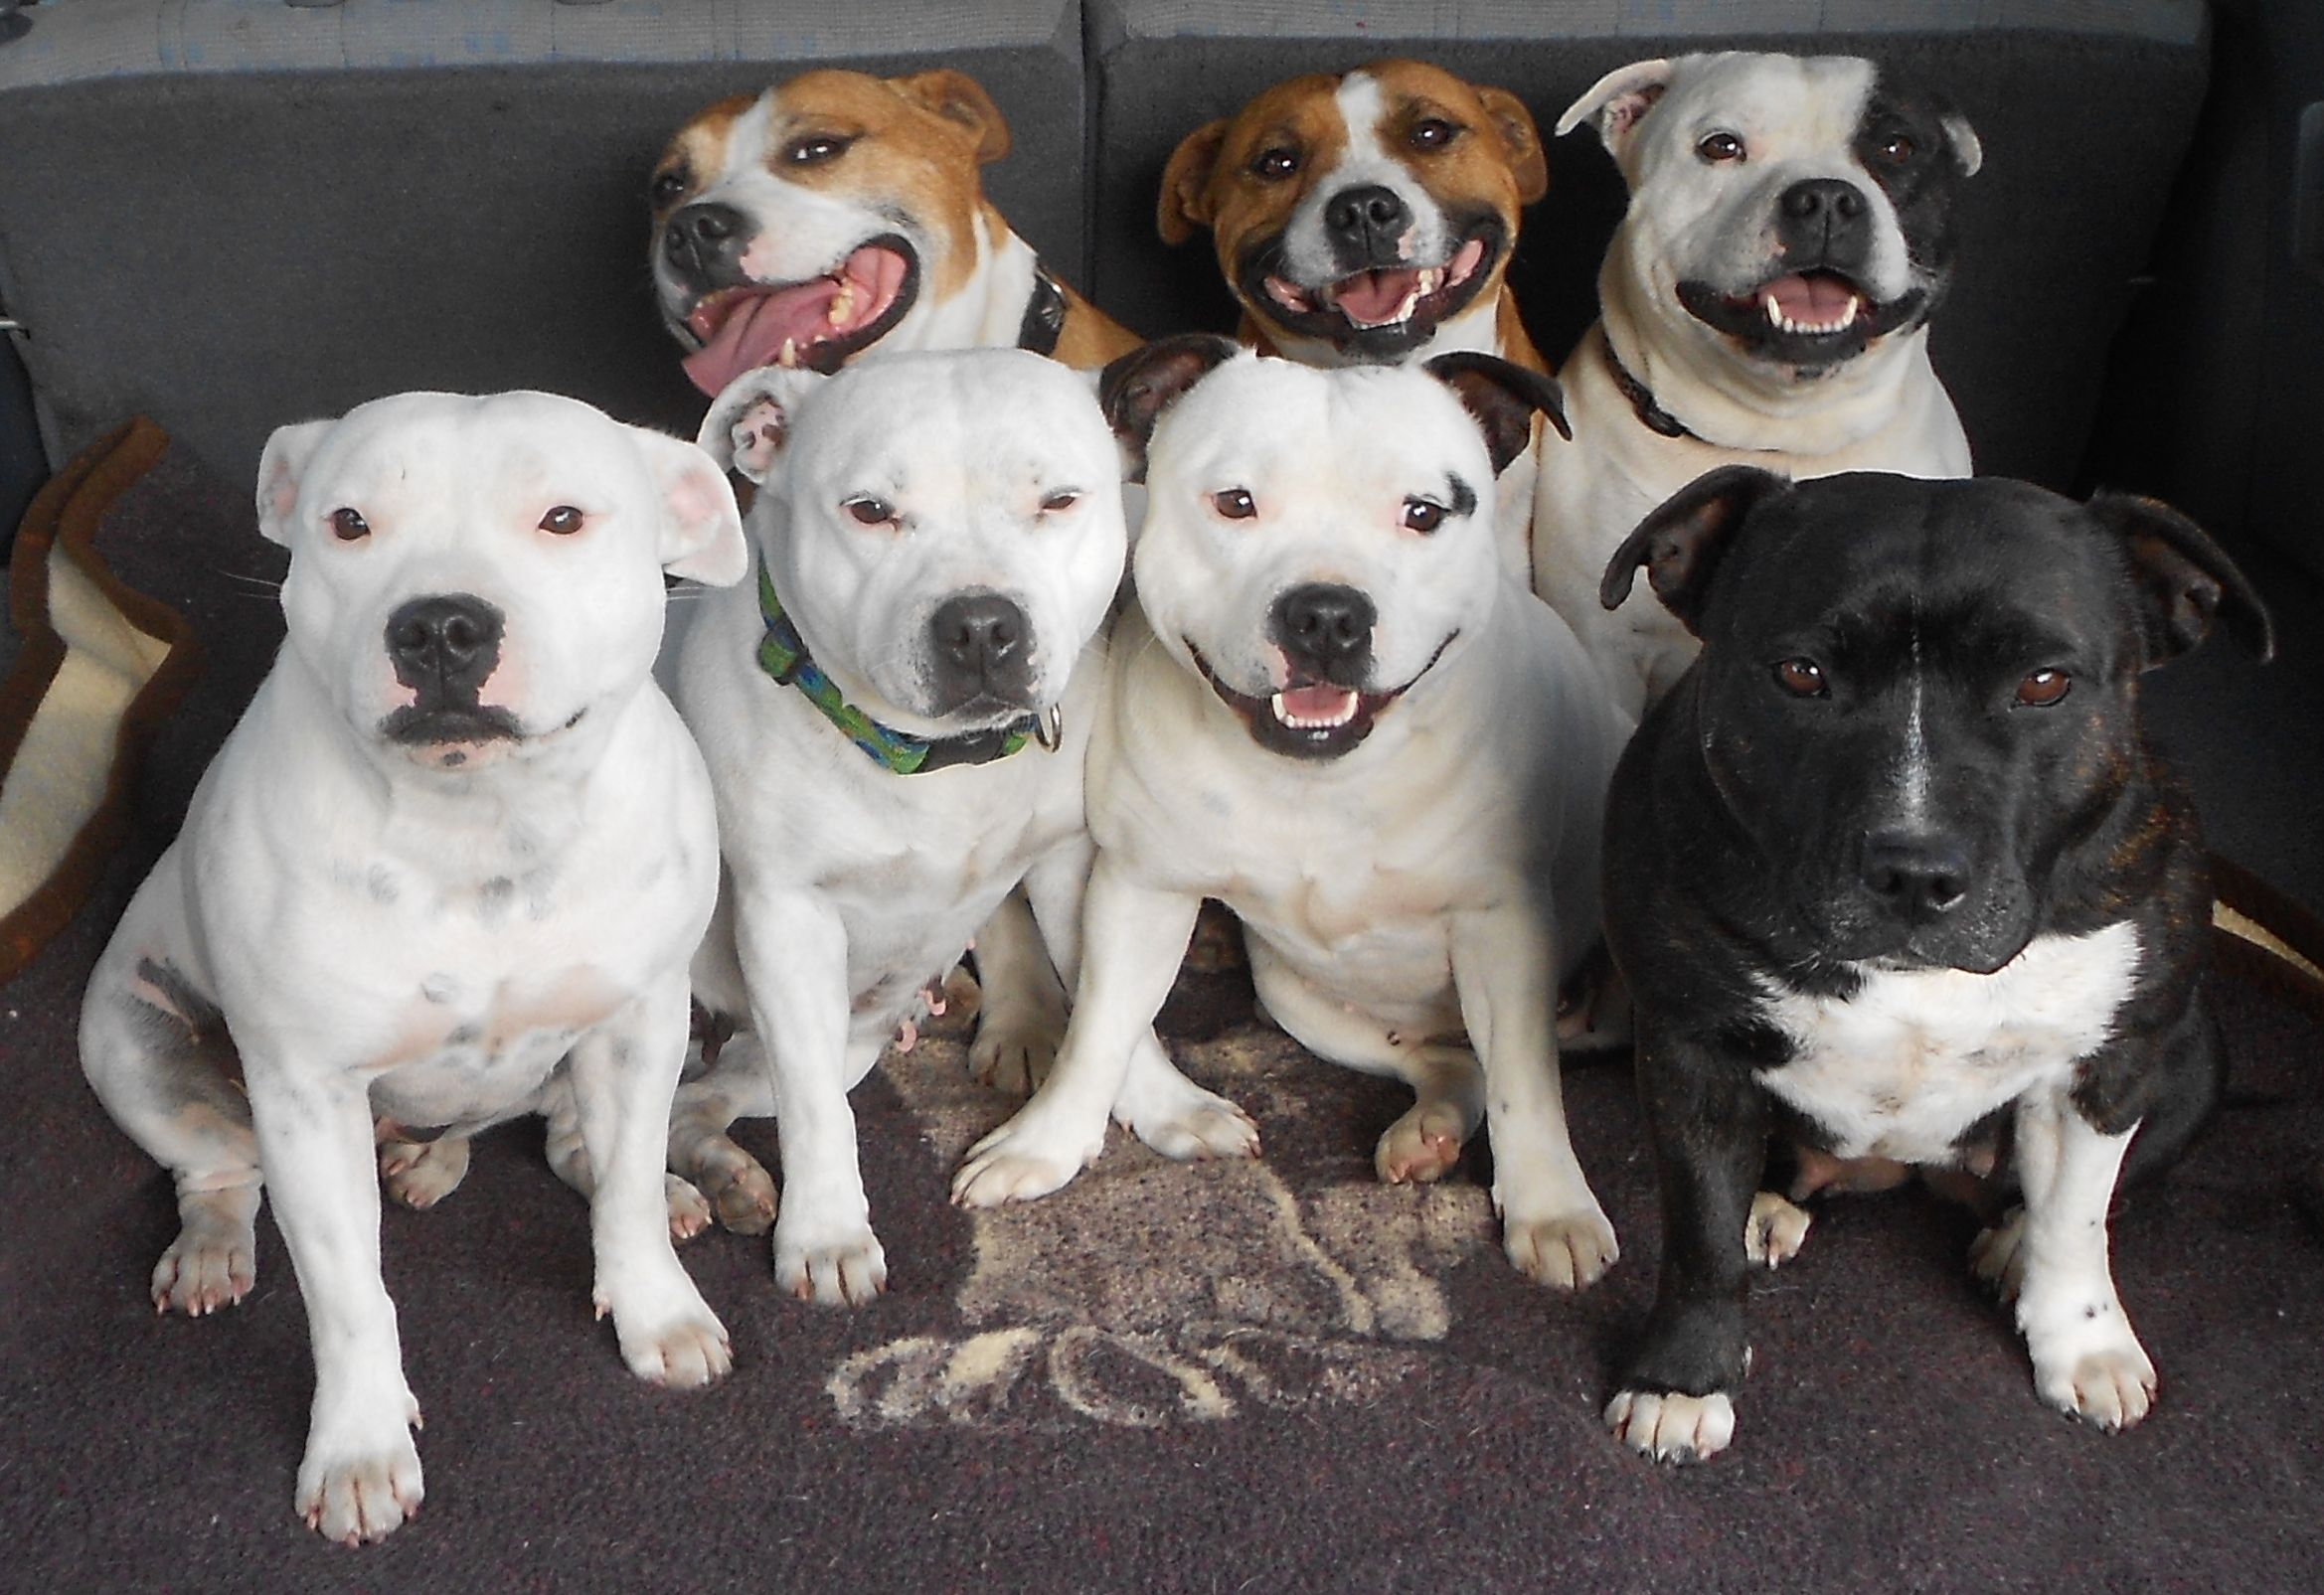 dog fighting ethics alarms group shot